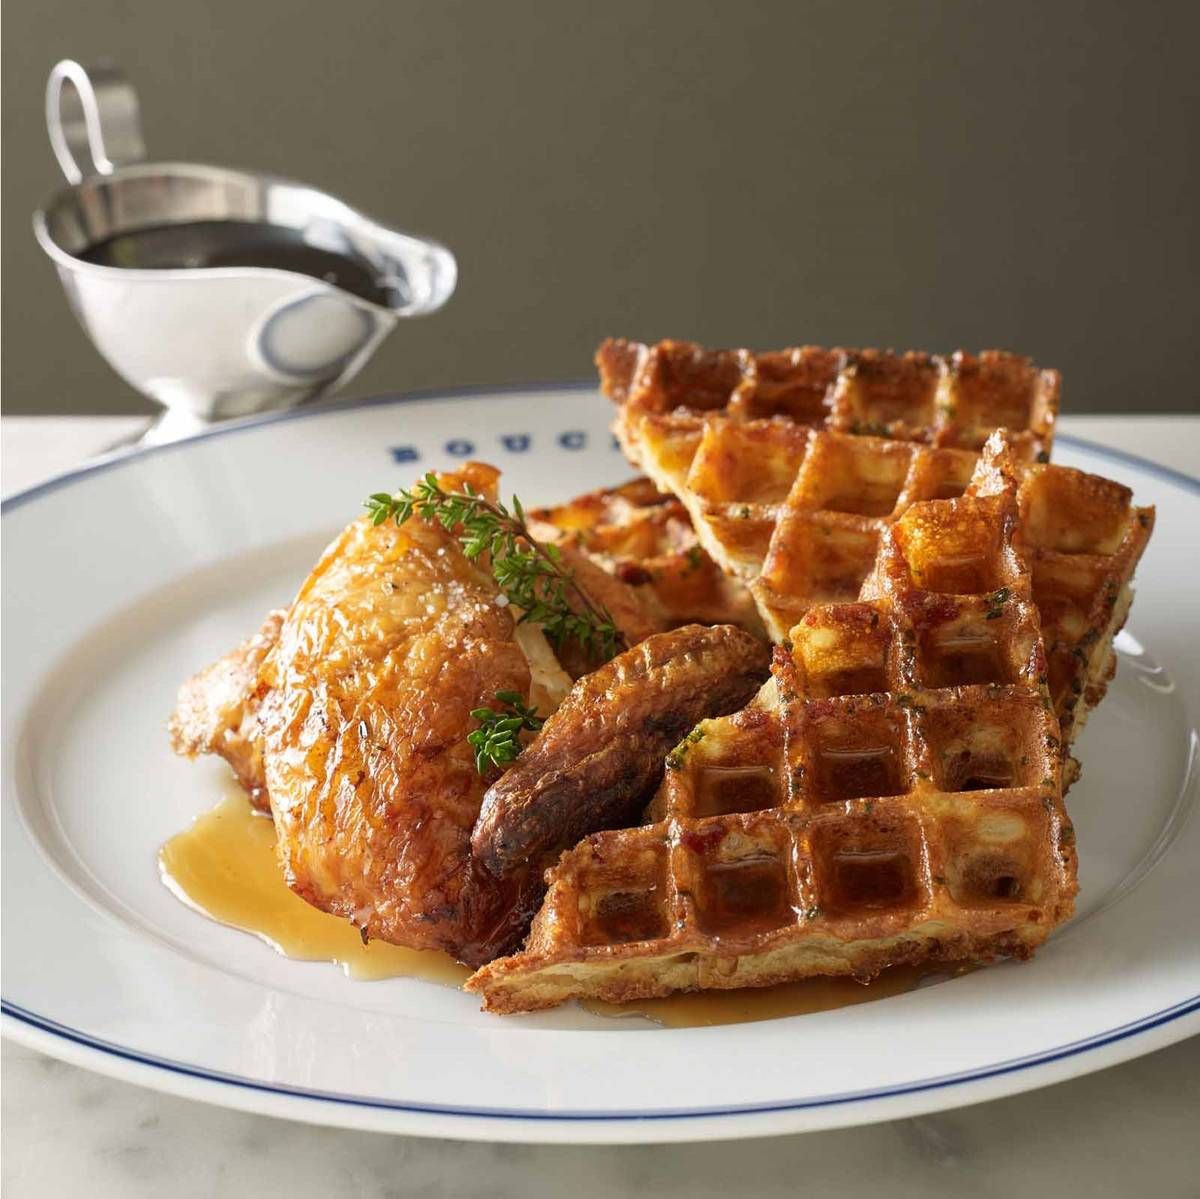 Roasted chicken with a bacon-chive waffle is on the menu during Bouchon's brunch. (Bouchon)